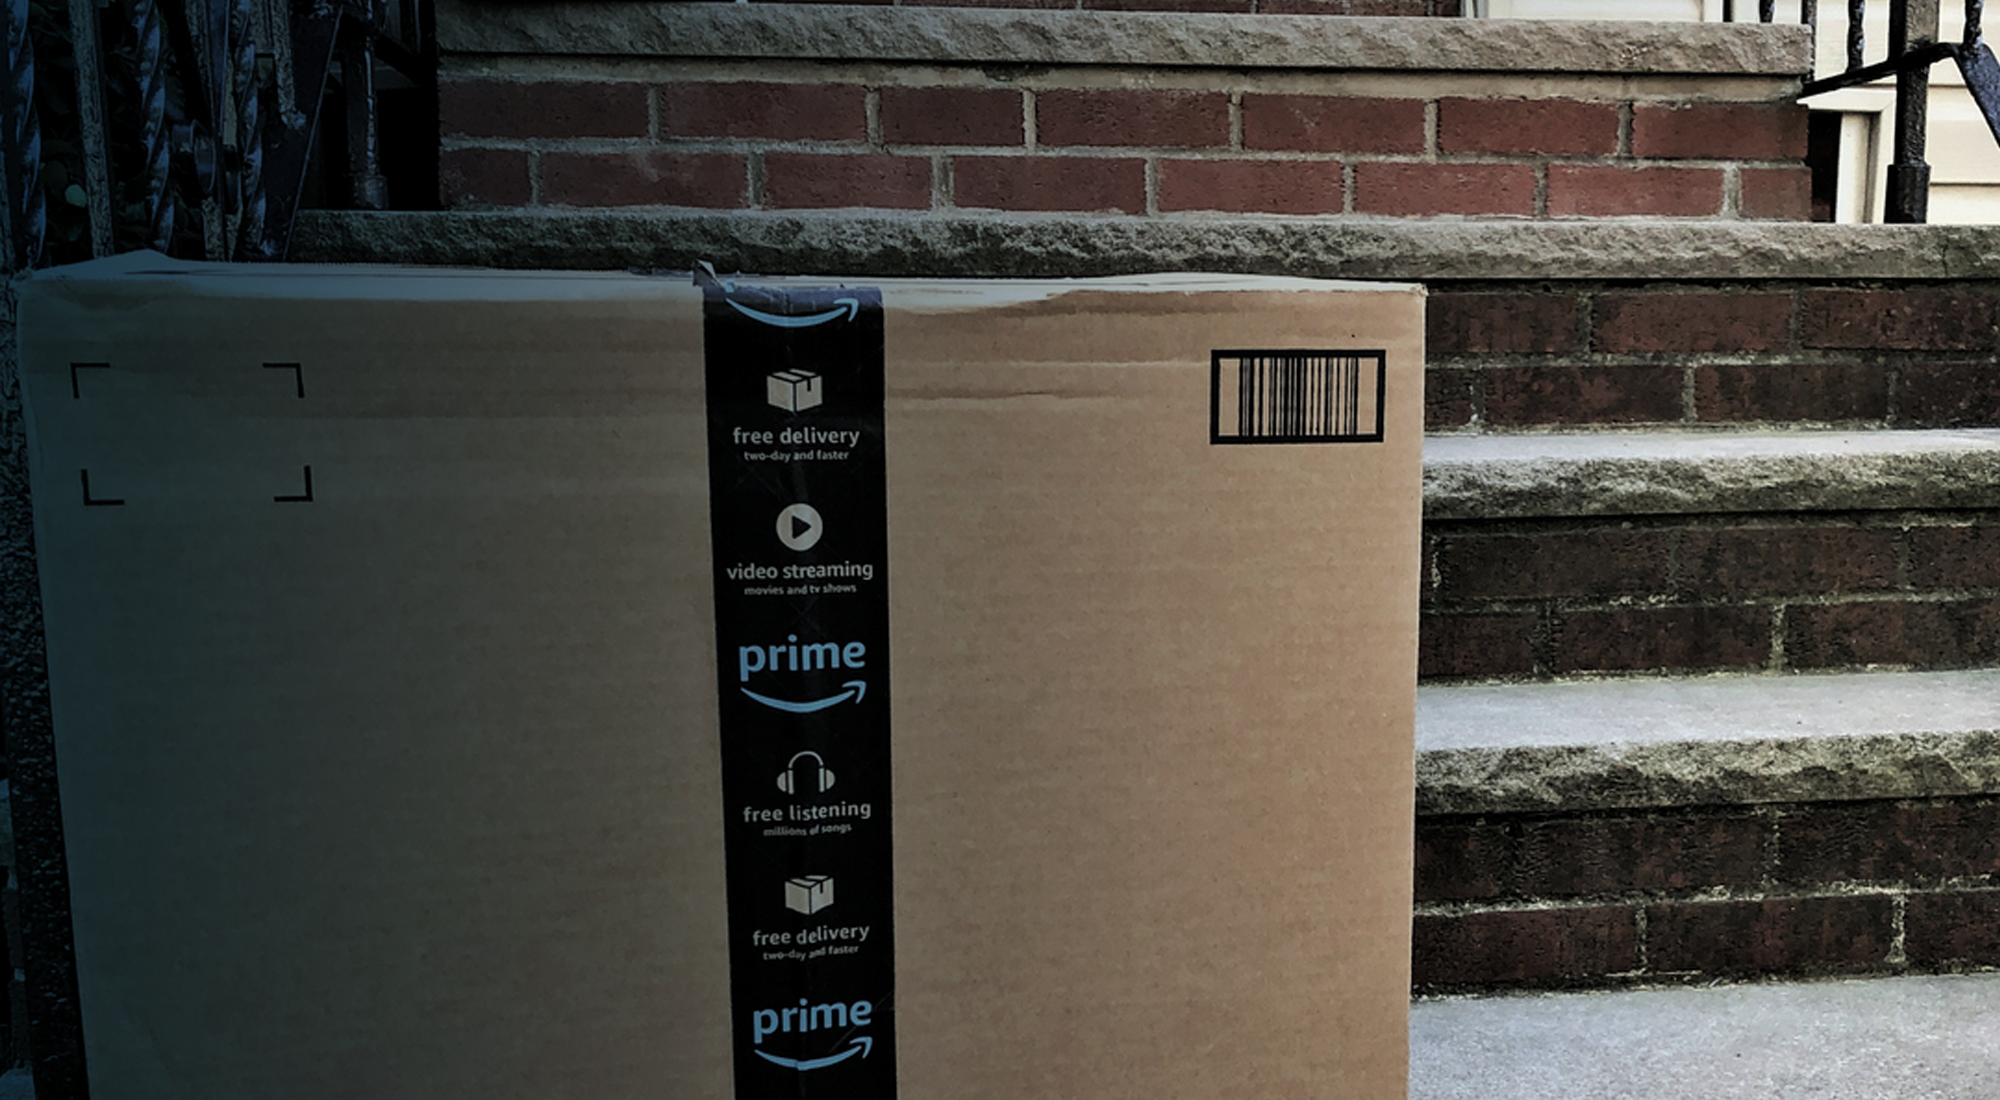 Helping those who help us: How to keep Amazon DSP delivery drivers safe